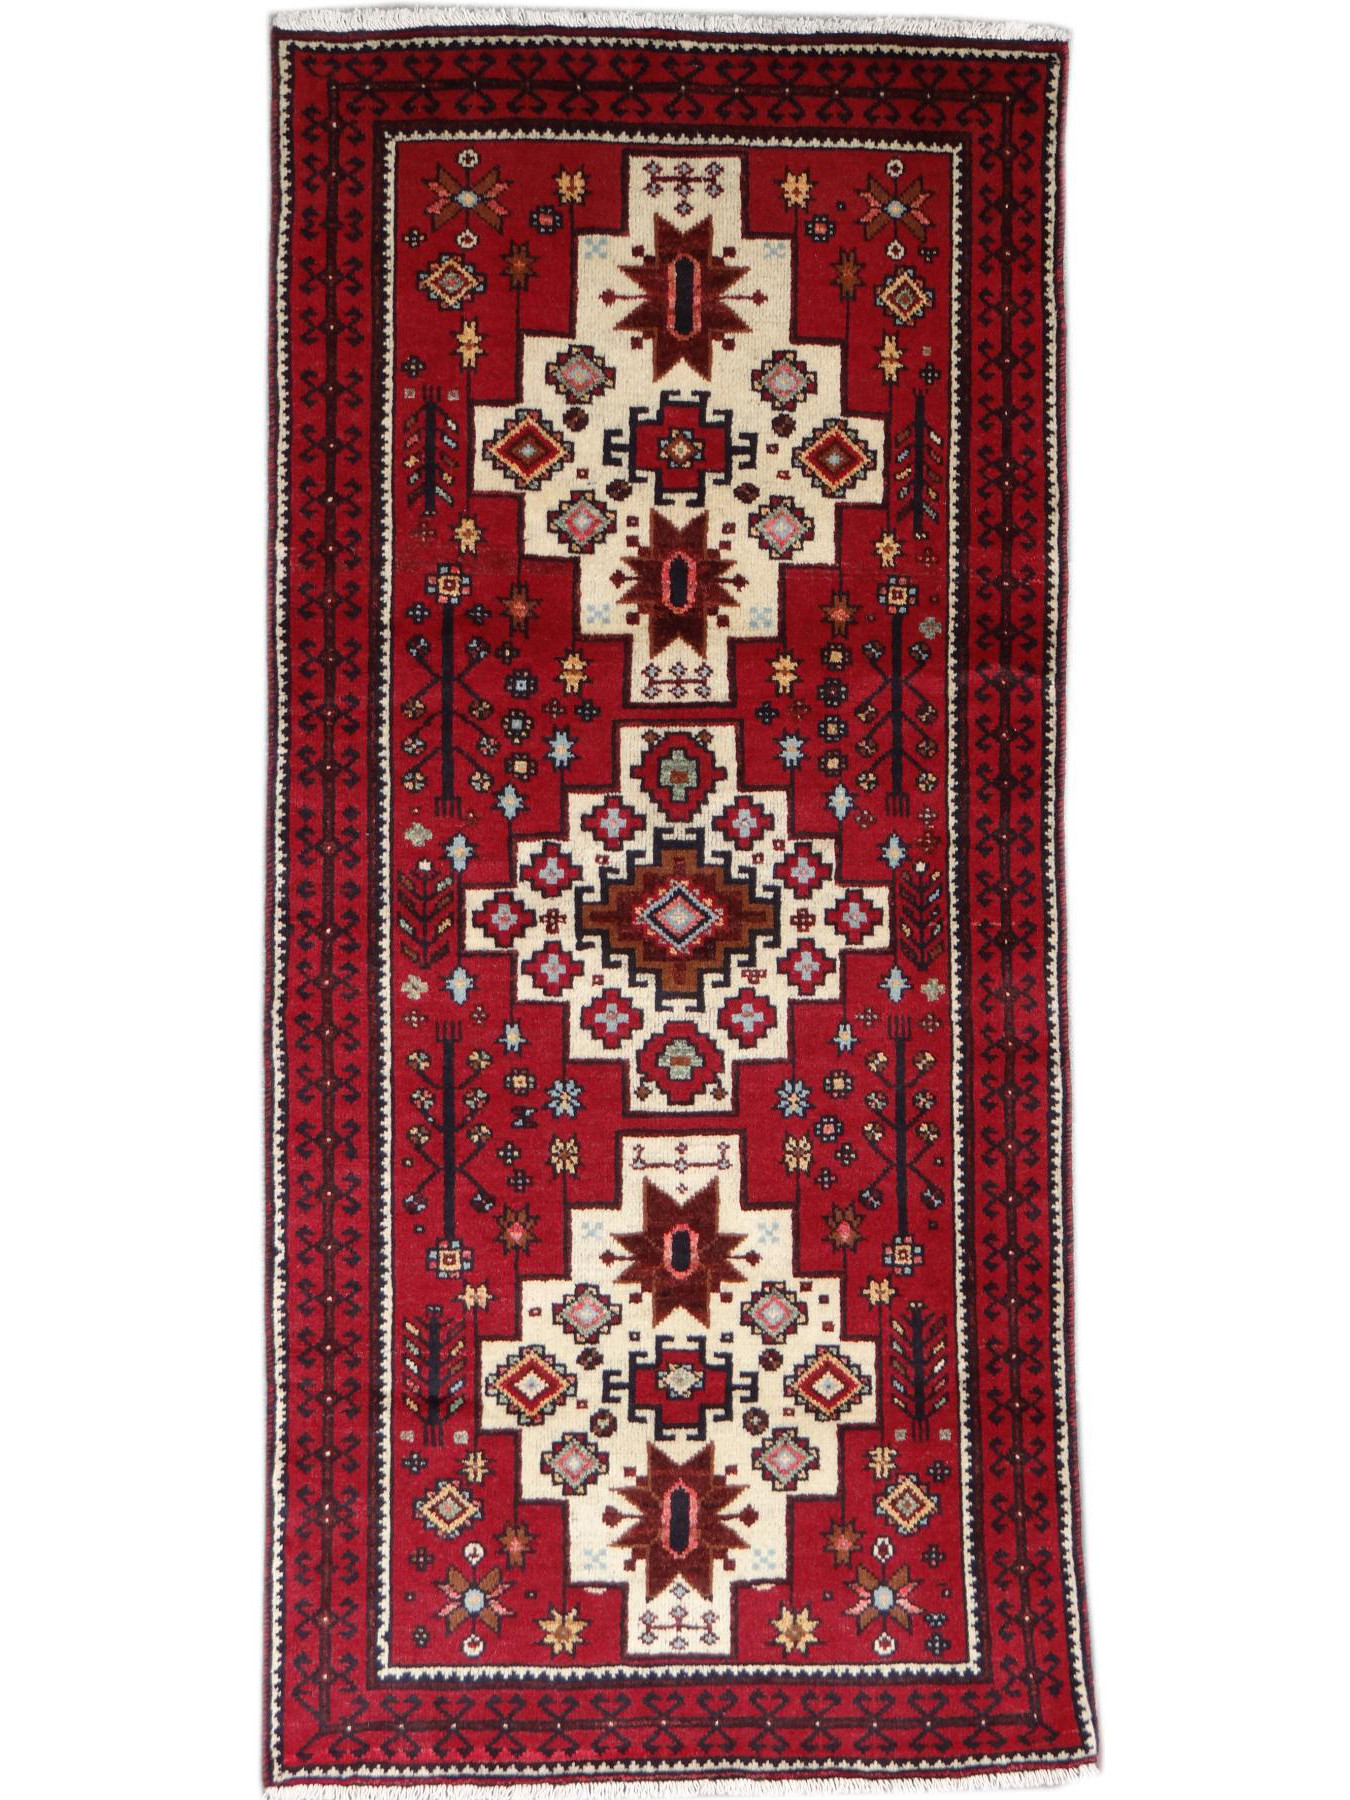 Persian carpets - Beloutch